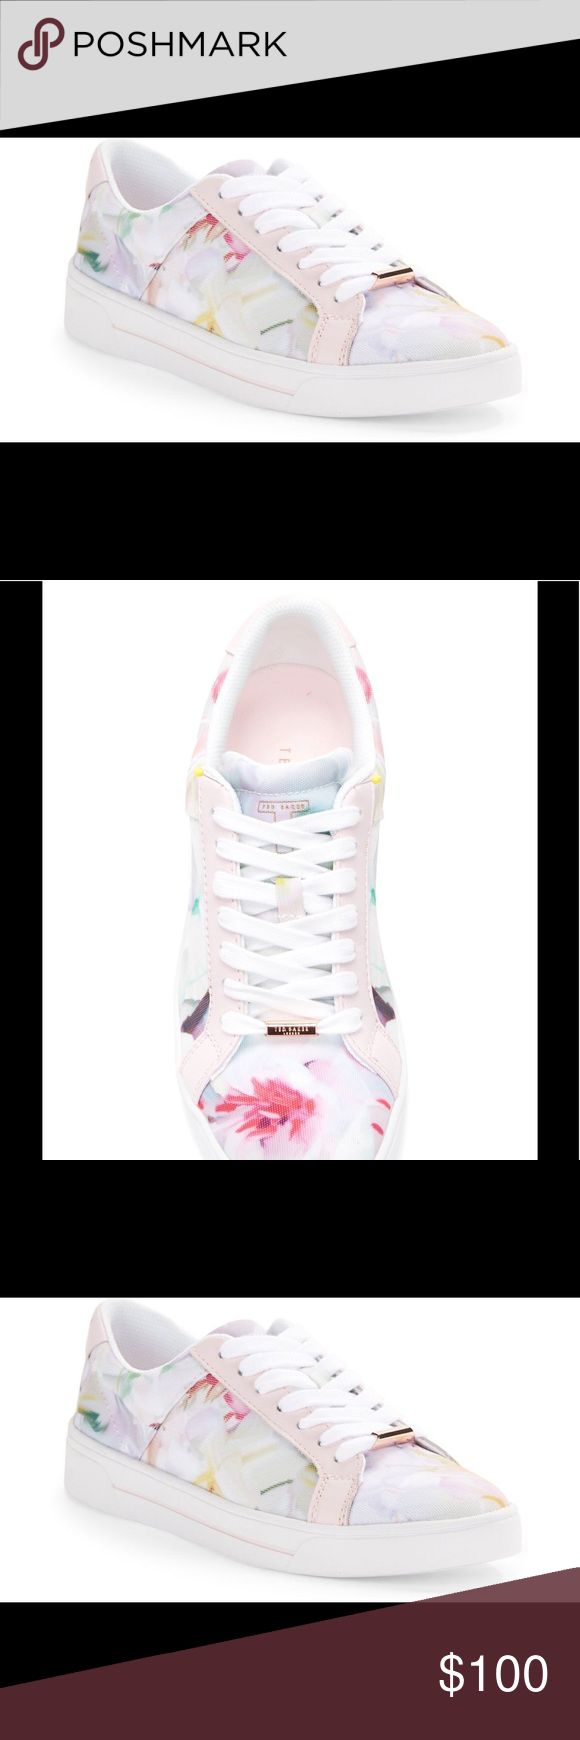 """Ted Baker London Eyewo Floral Lace-Up Sneakers Trendsetting trainers hit the pavement in a fresh flowery motif with metallic hardware accents Rubber platform, 1"""" Textile upper Round toe Lace-up style Textile insole Imported Ted Baker Shoes Athletic Shoes"""